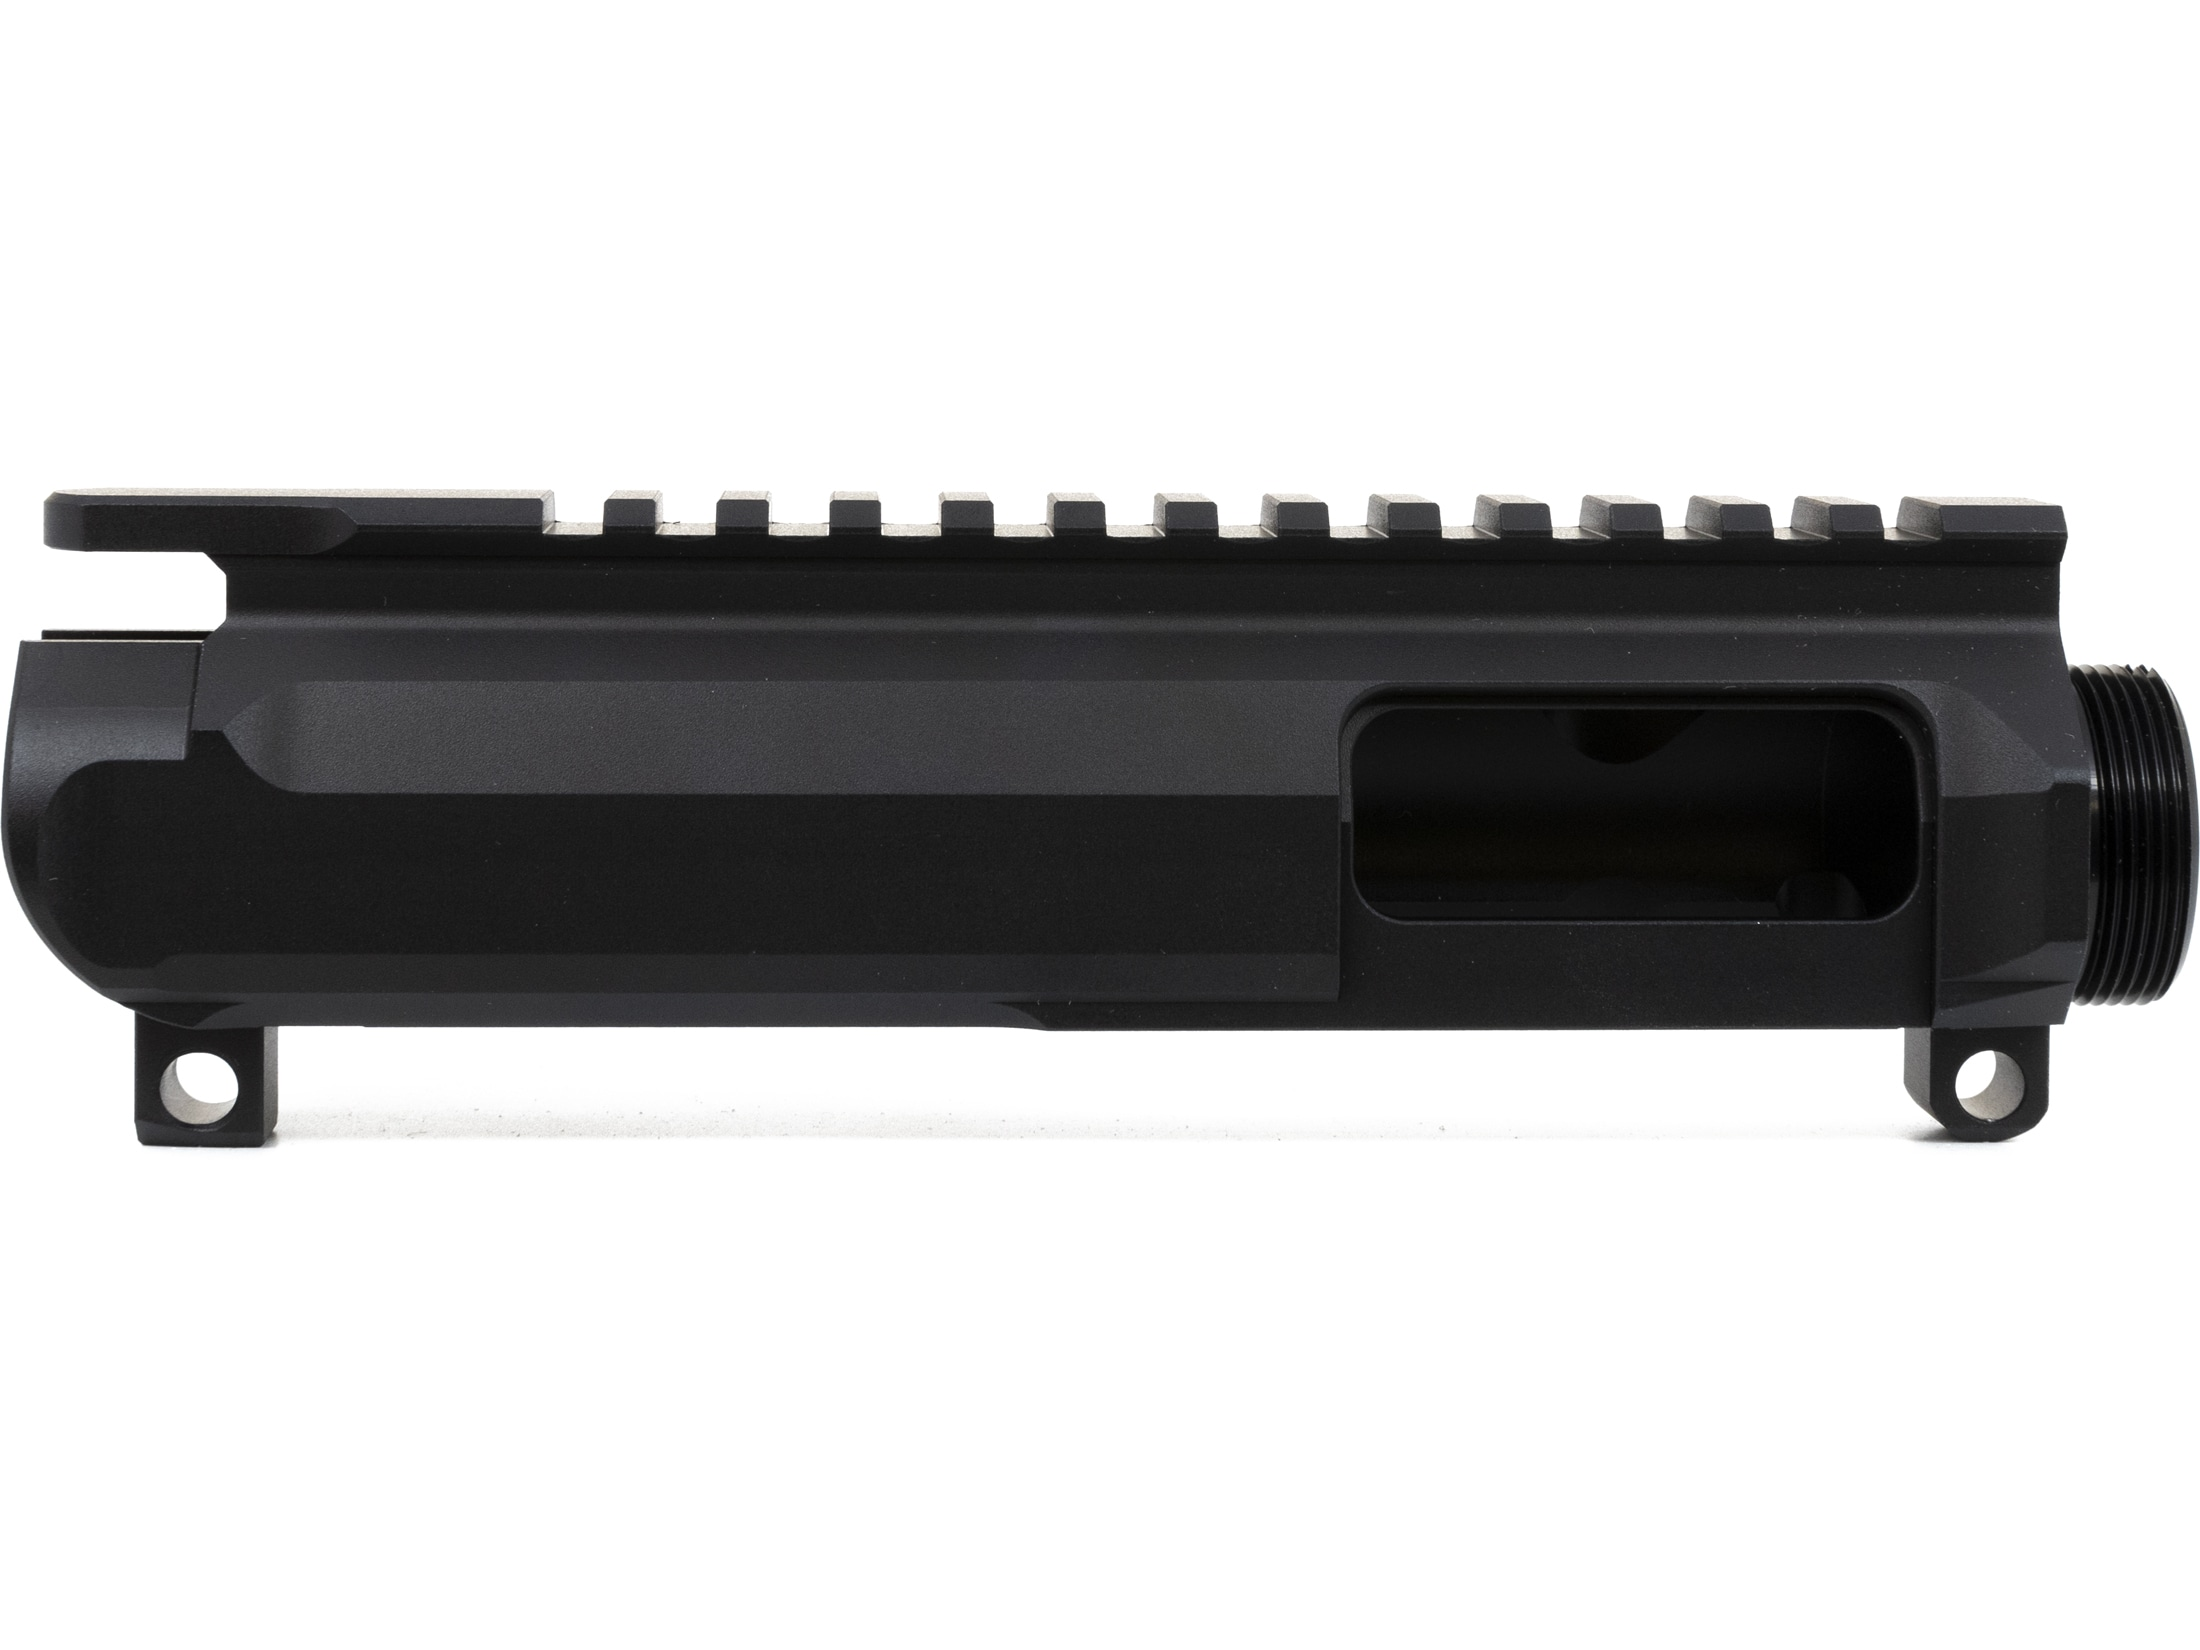 Find Receiver Parts for Rifles in the AR Platform & Bolt Actions